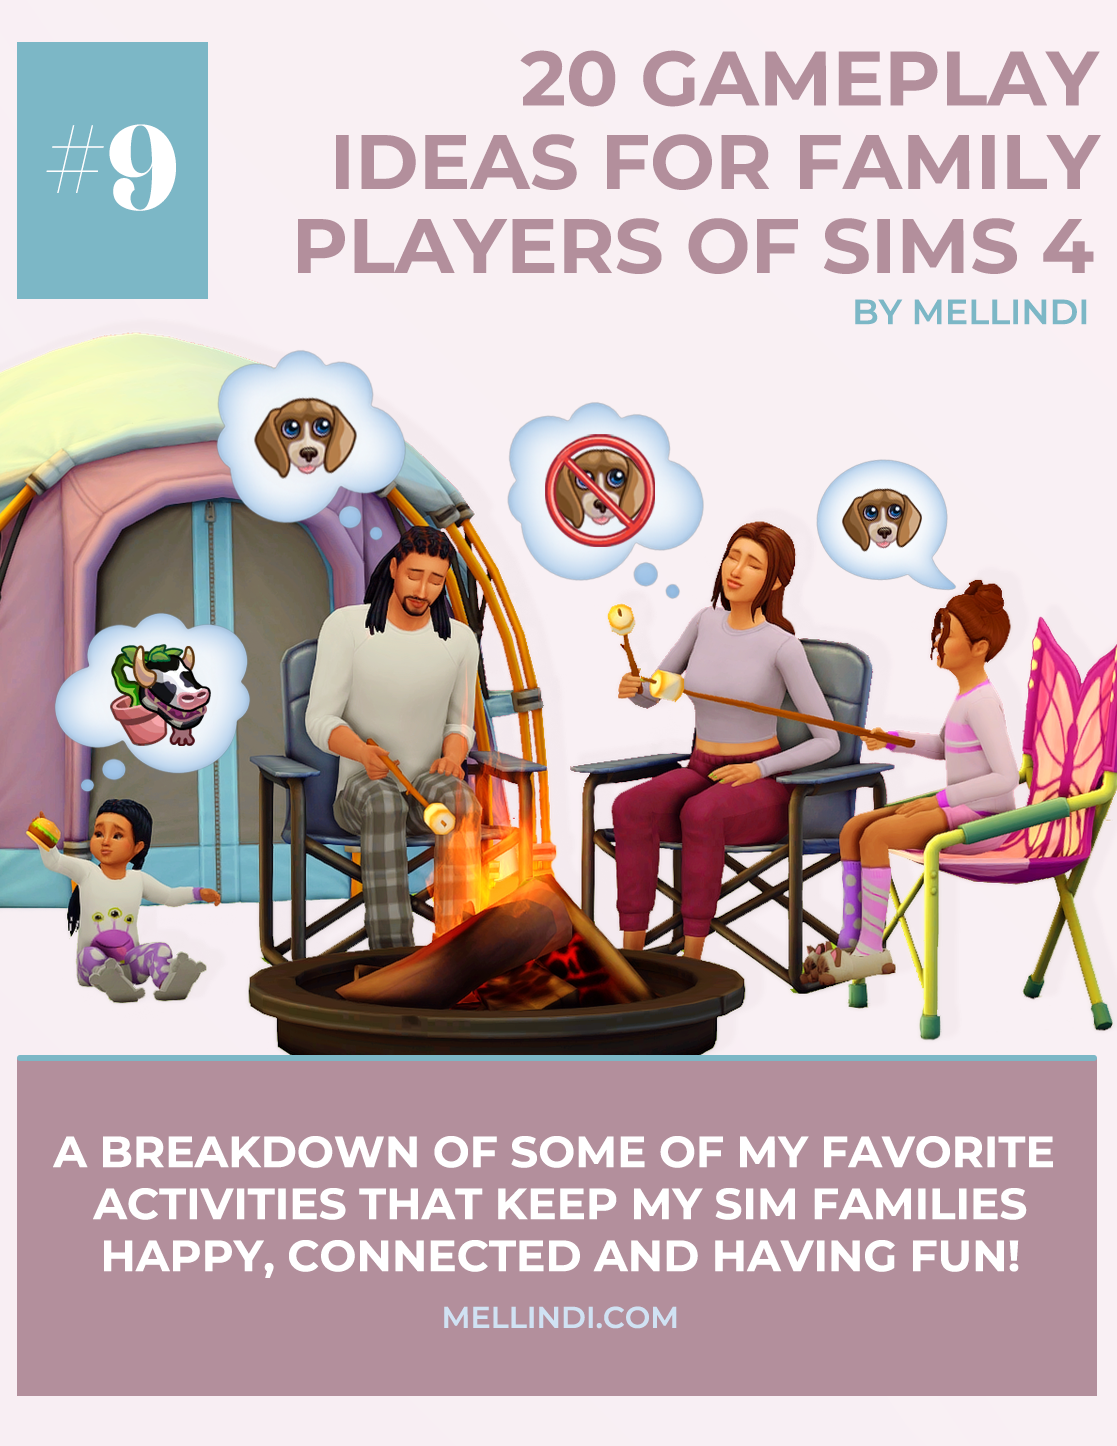 20 Gameplay Ideas for Family Players of Sims 20 – Mellindi   Sims 20 ...